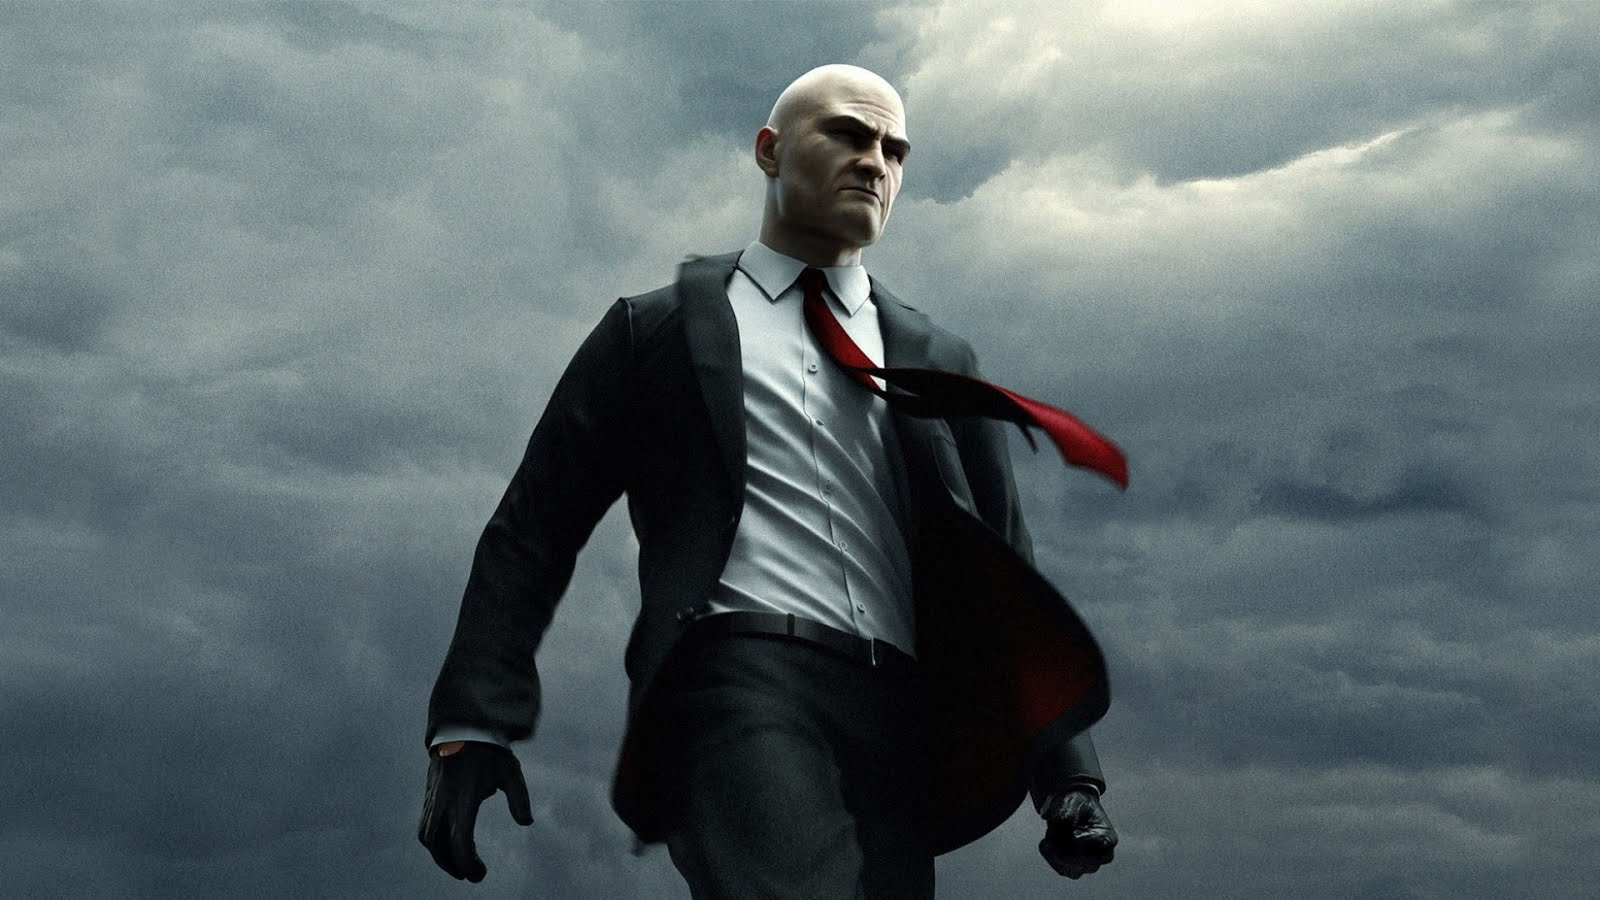 Hitman HD & Widescreen Wallpaper 0.383494571133758